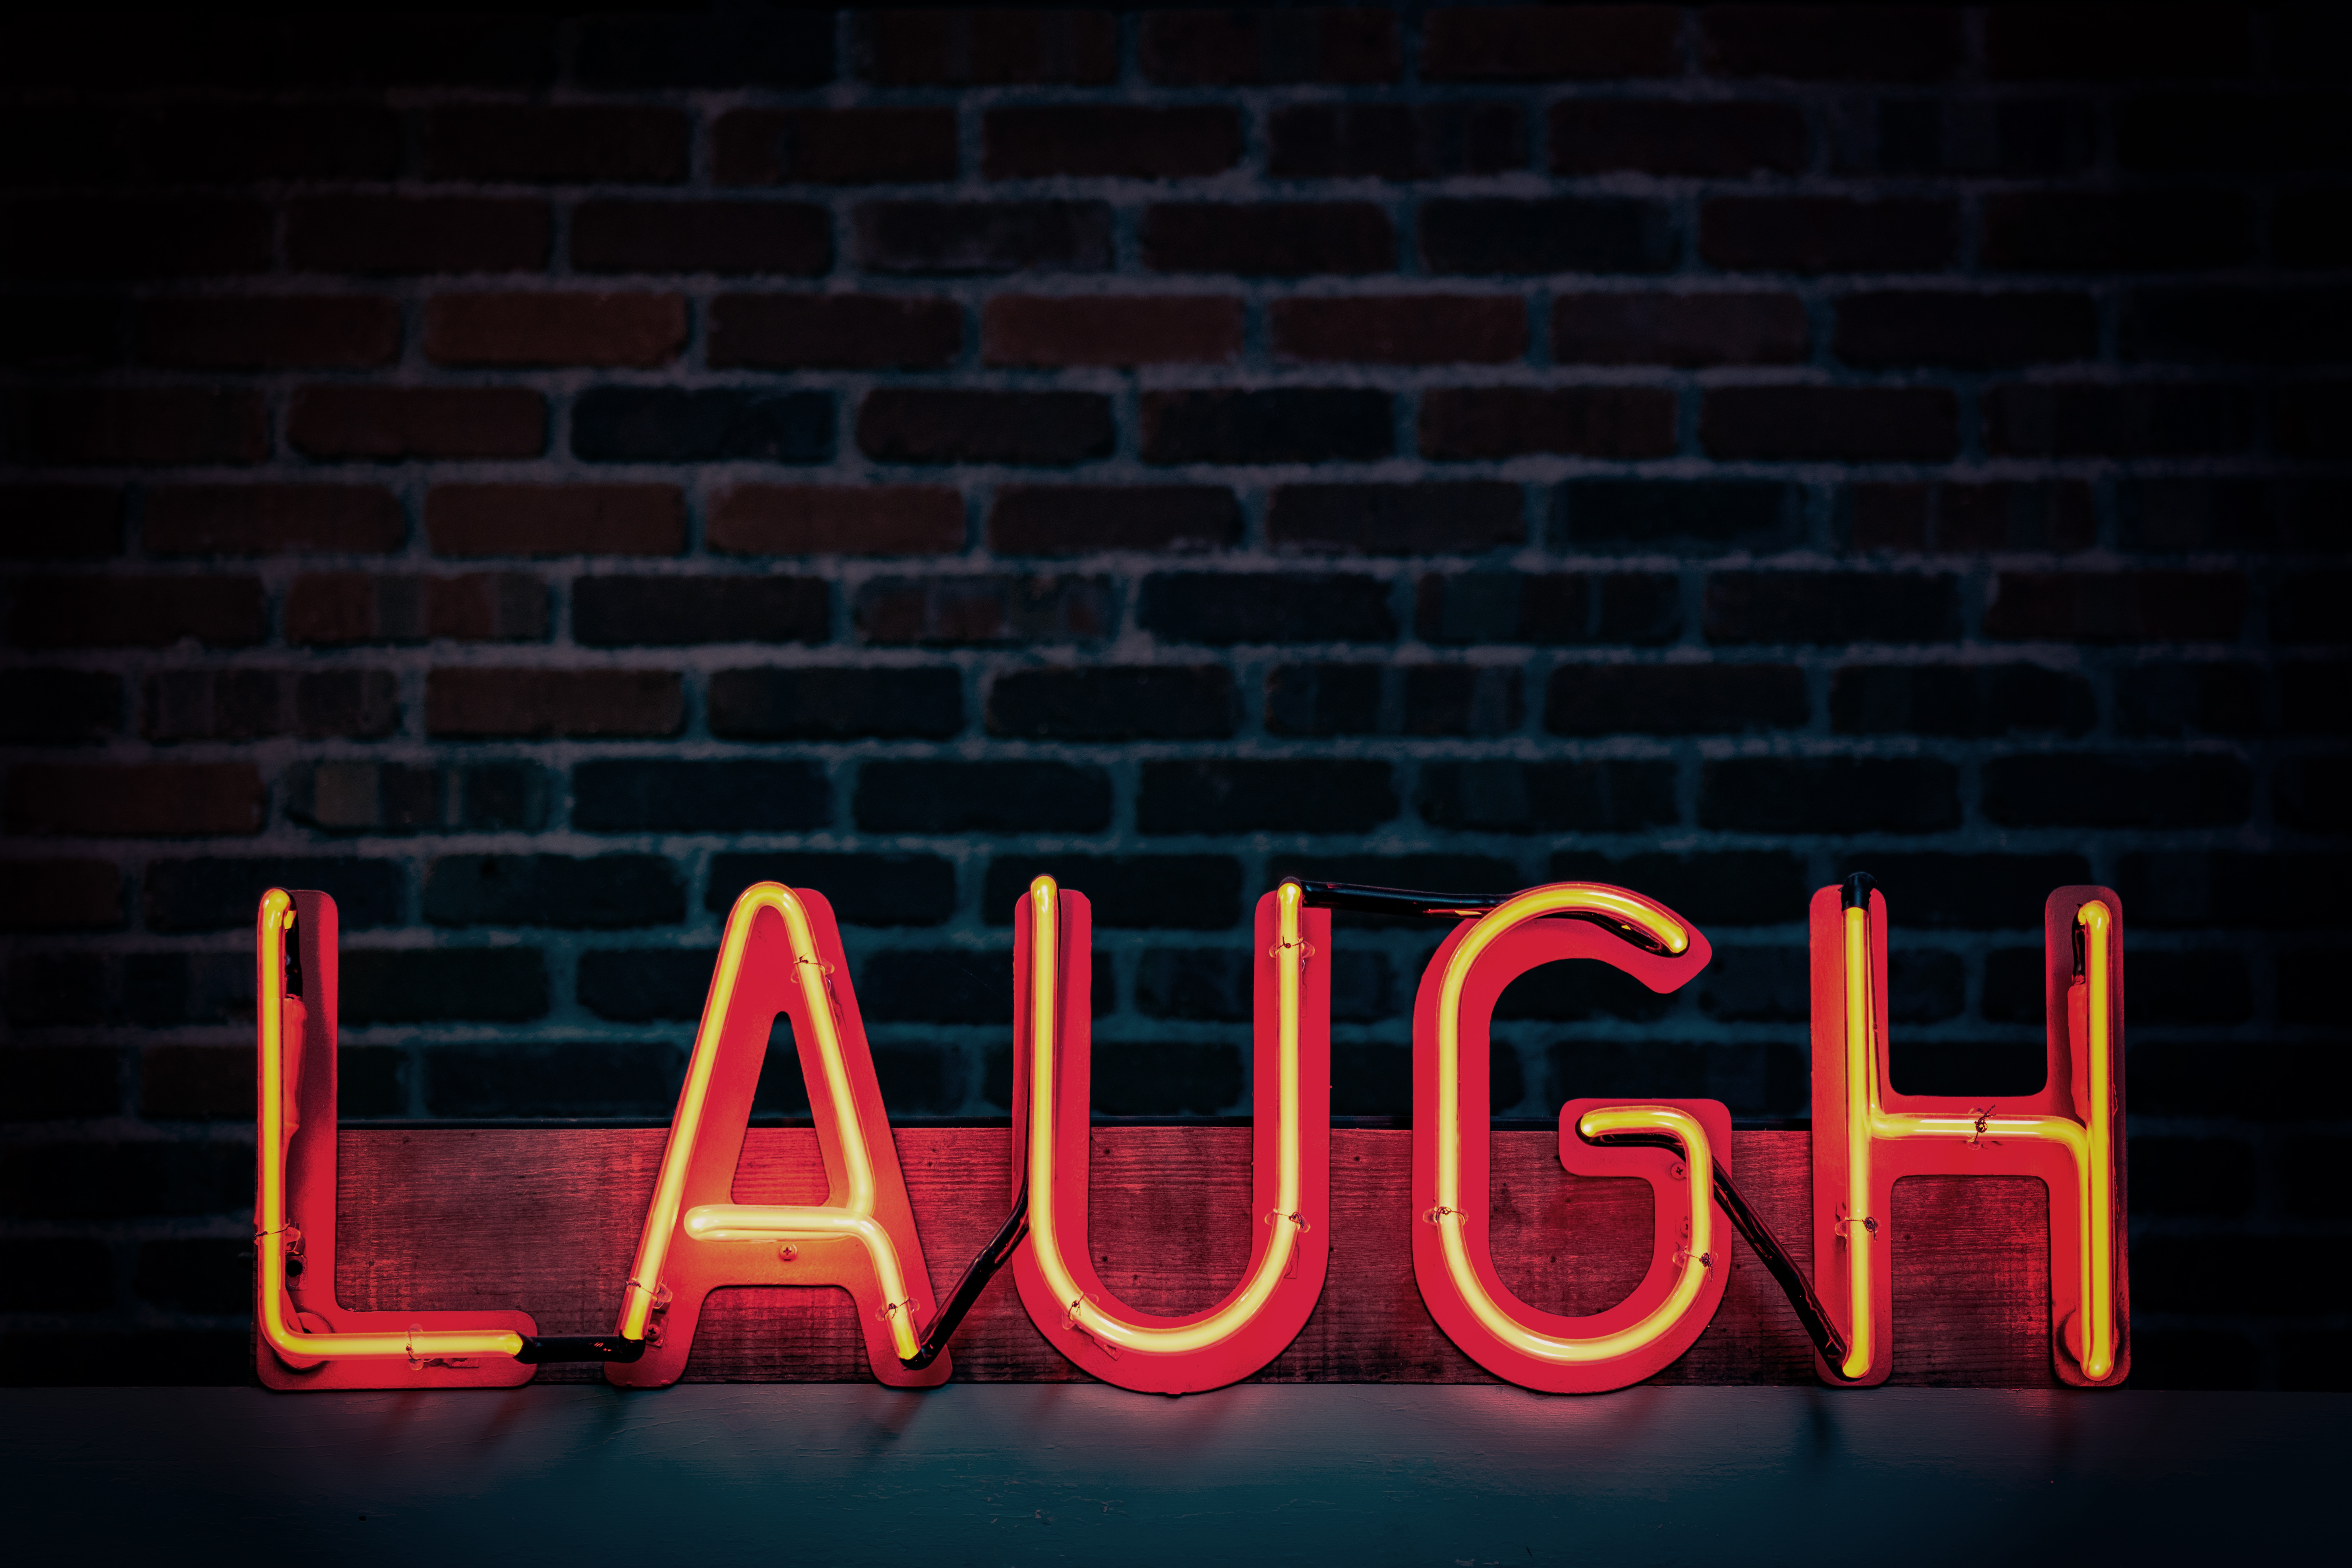 Laugh, neon sign